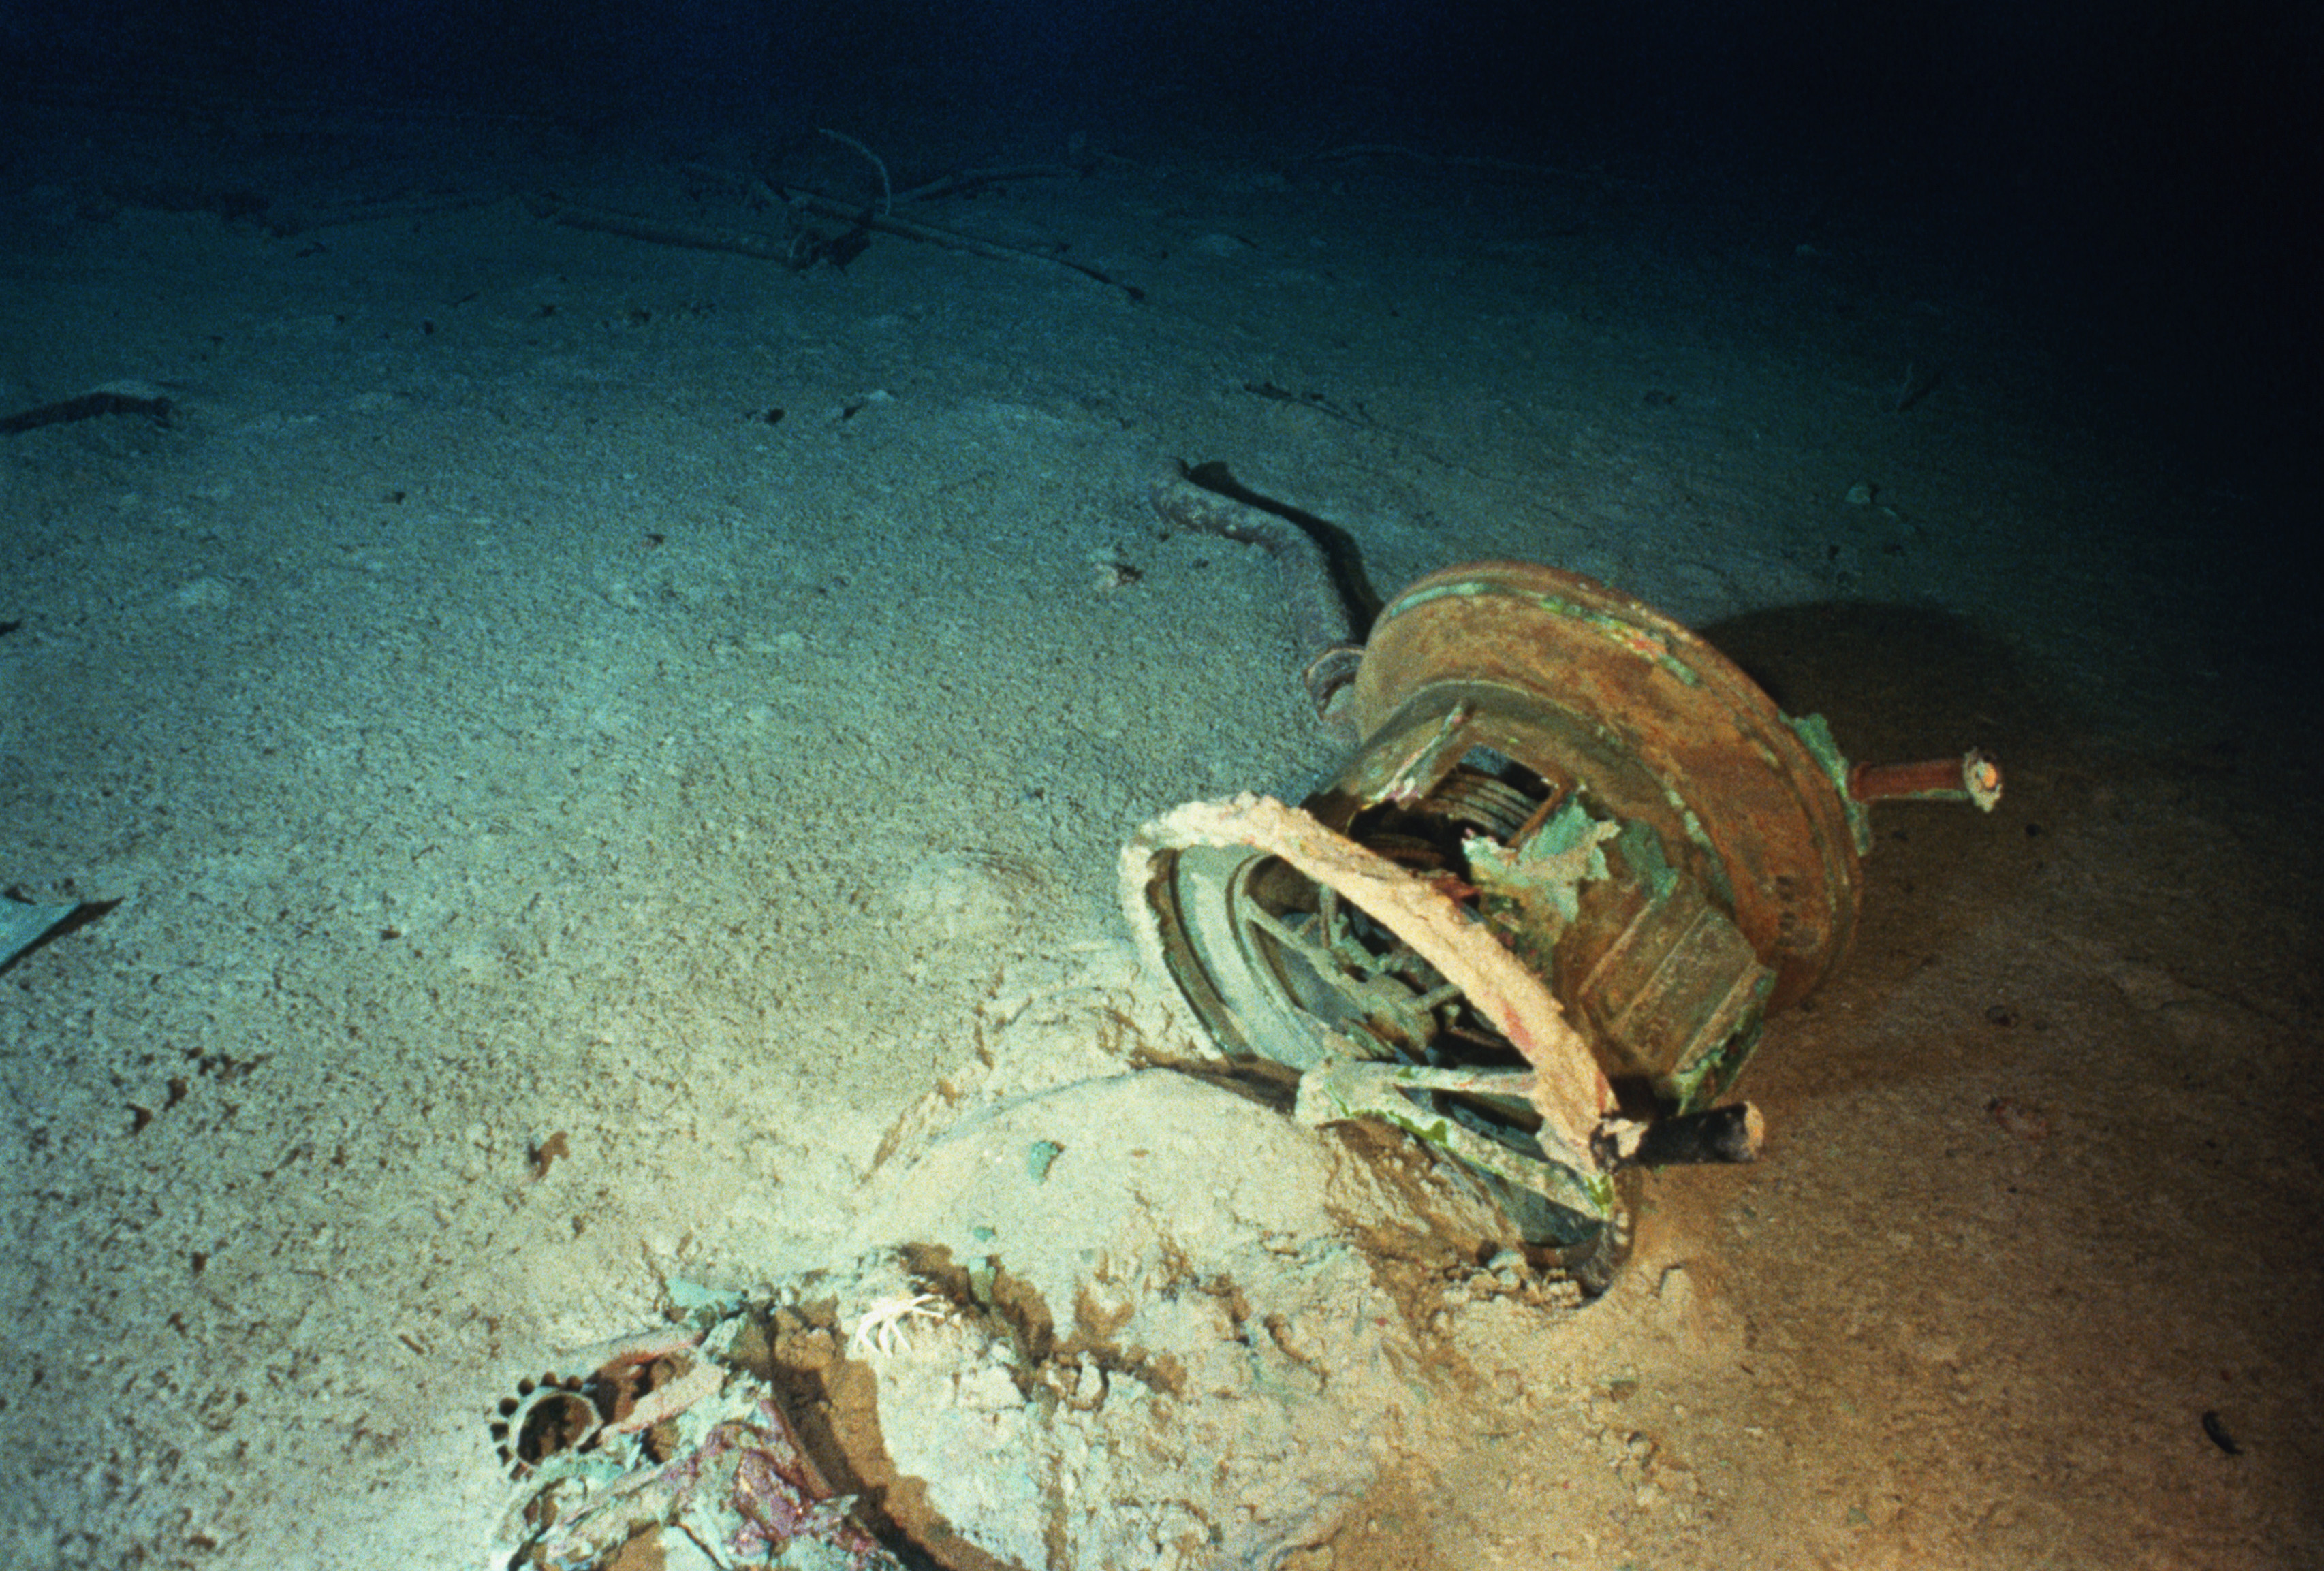 One of Titanic's ship telegraphs, a device which told the engine room the bridge's orders for speed, lies in the wreck's debris field. Image ©1995 Ralph White/CORBIS